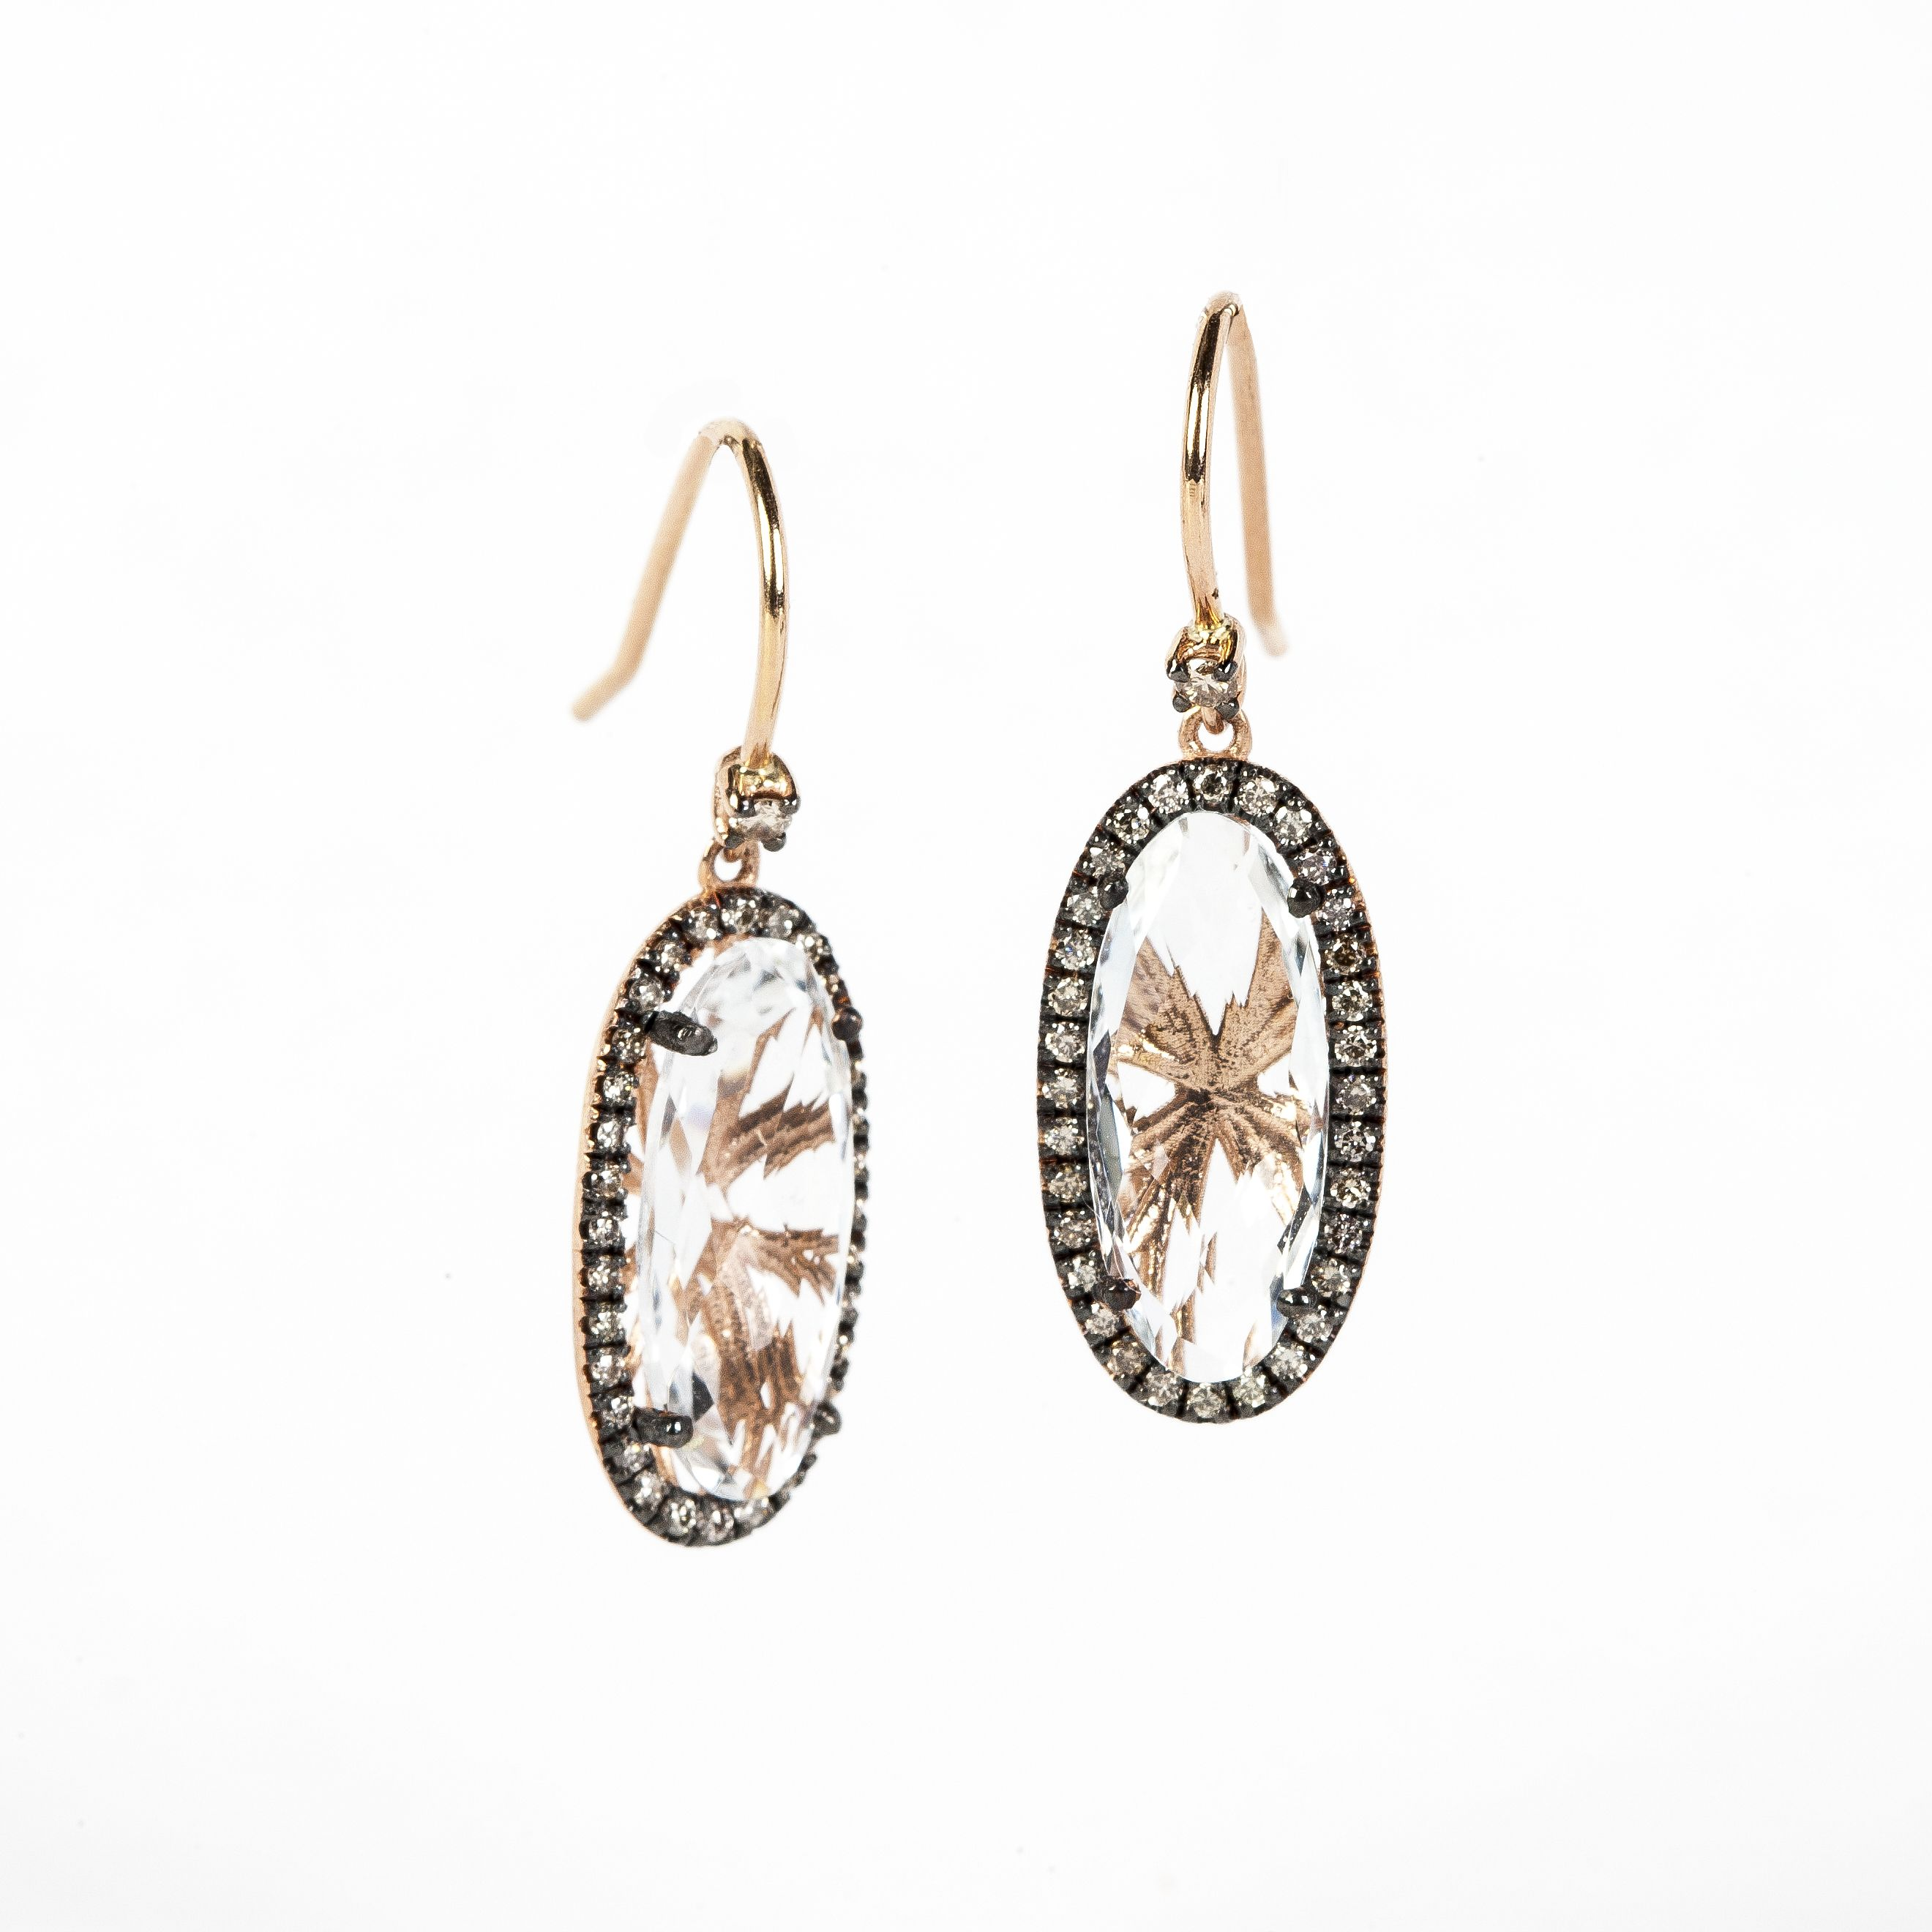 jewelry champagne zivar shana earrings diamond gallery gulati charushila lyst stud gold